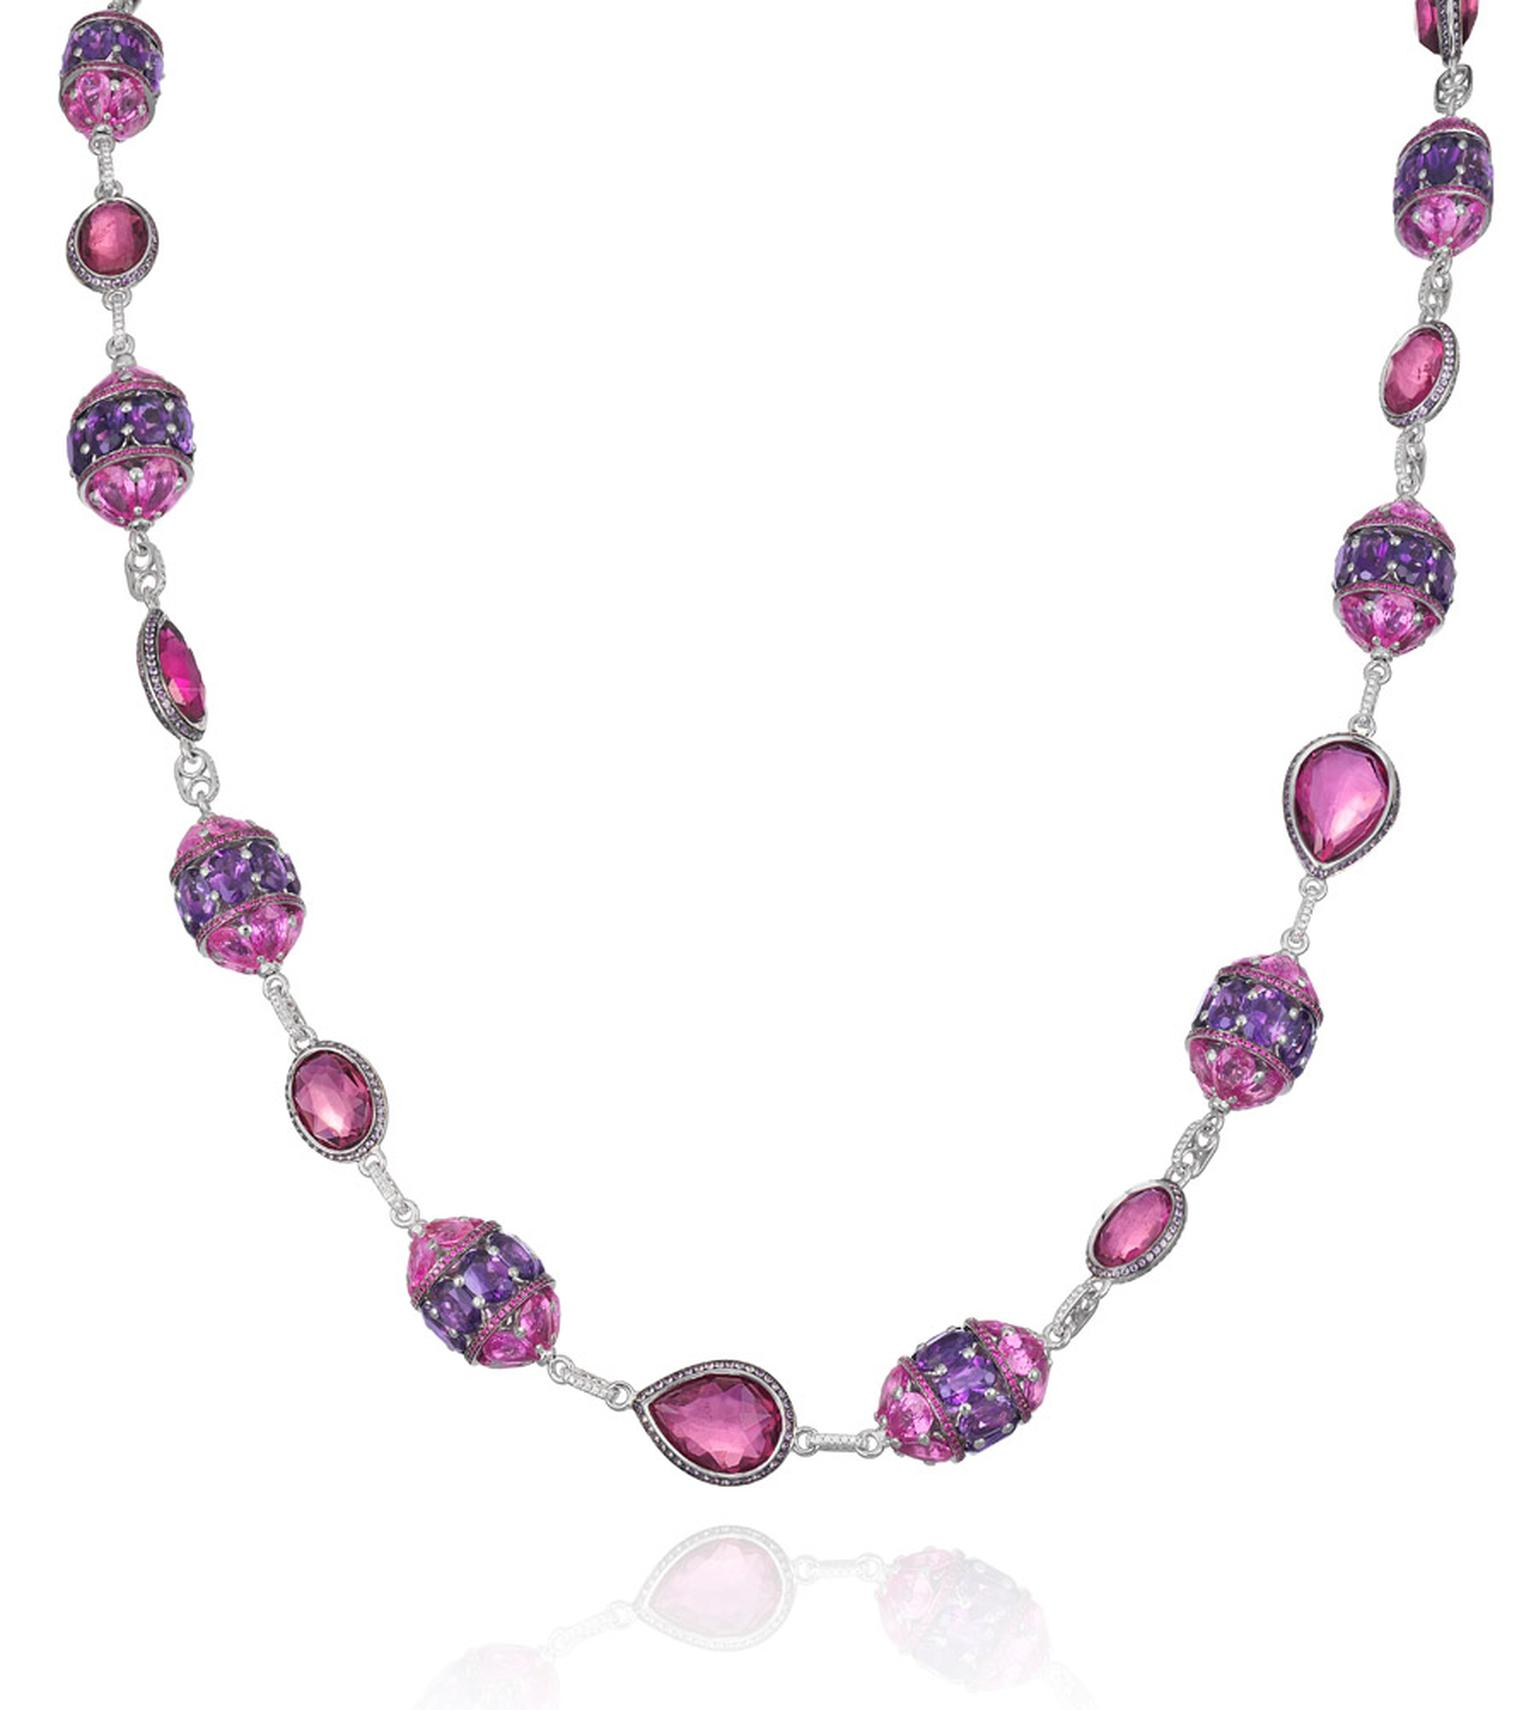 Chopard-Cannes-Pink-Papphire-and-Amethyst-Necklace.jpg